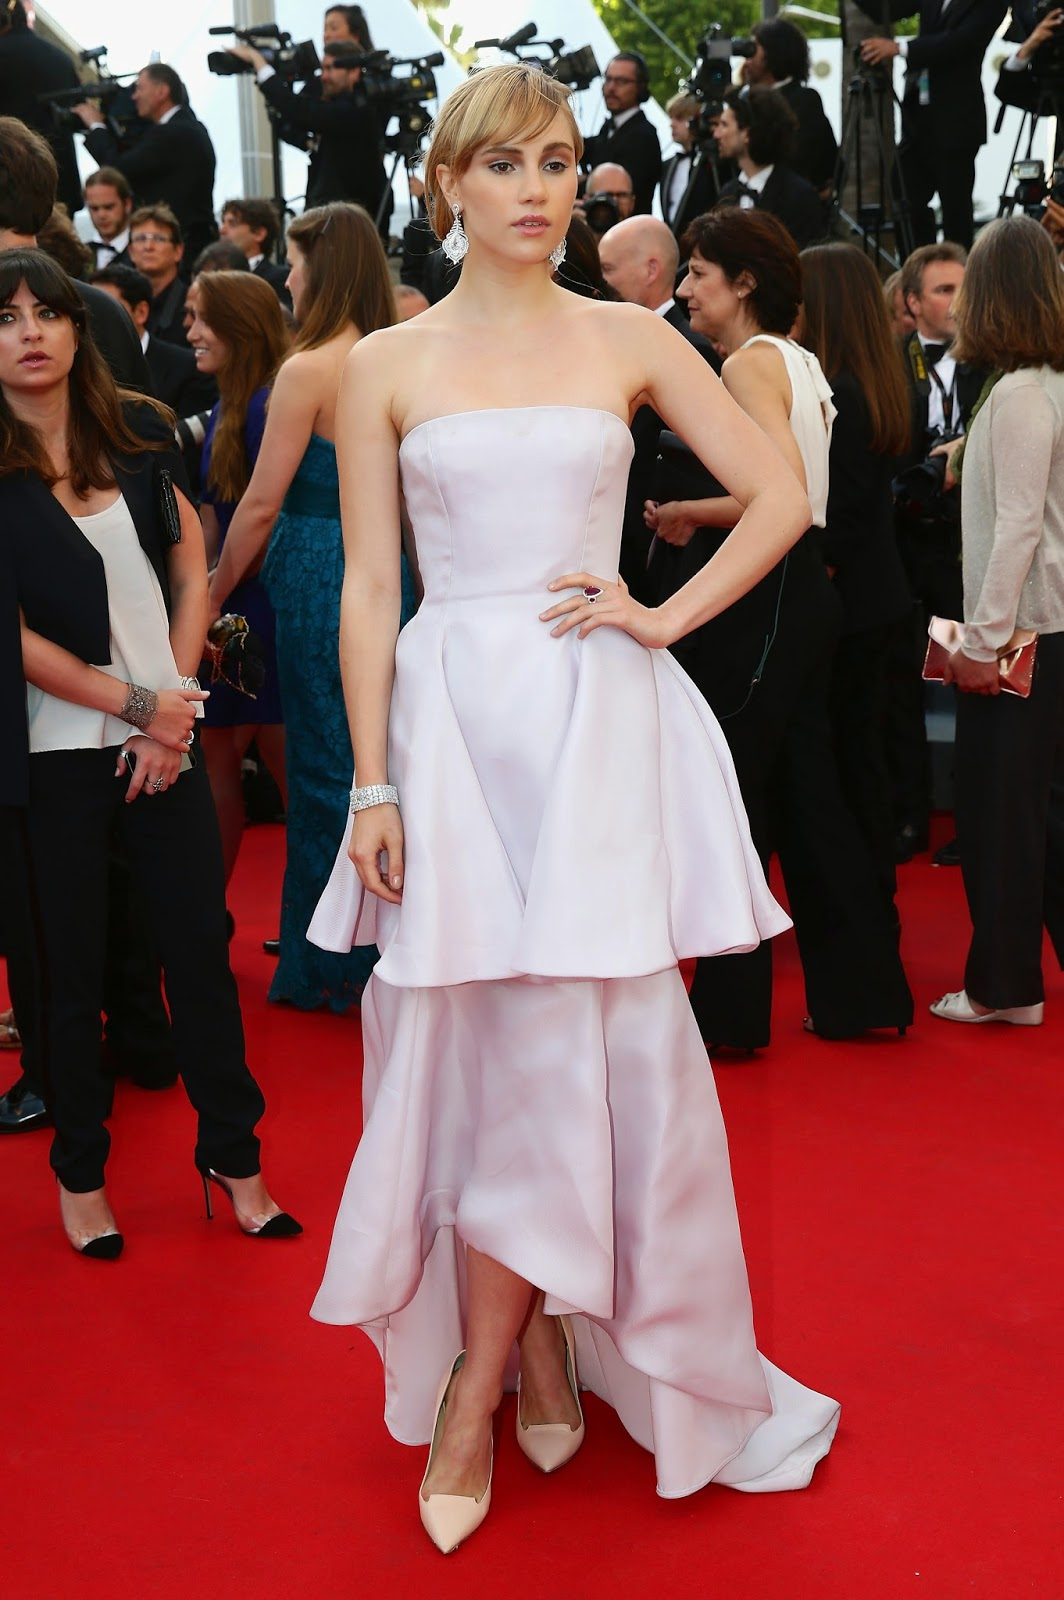 Actress, Model @ Suki Waterhouse - Candids 'The Homesman' Premiere, Cannes